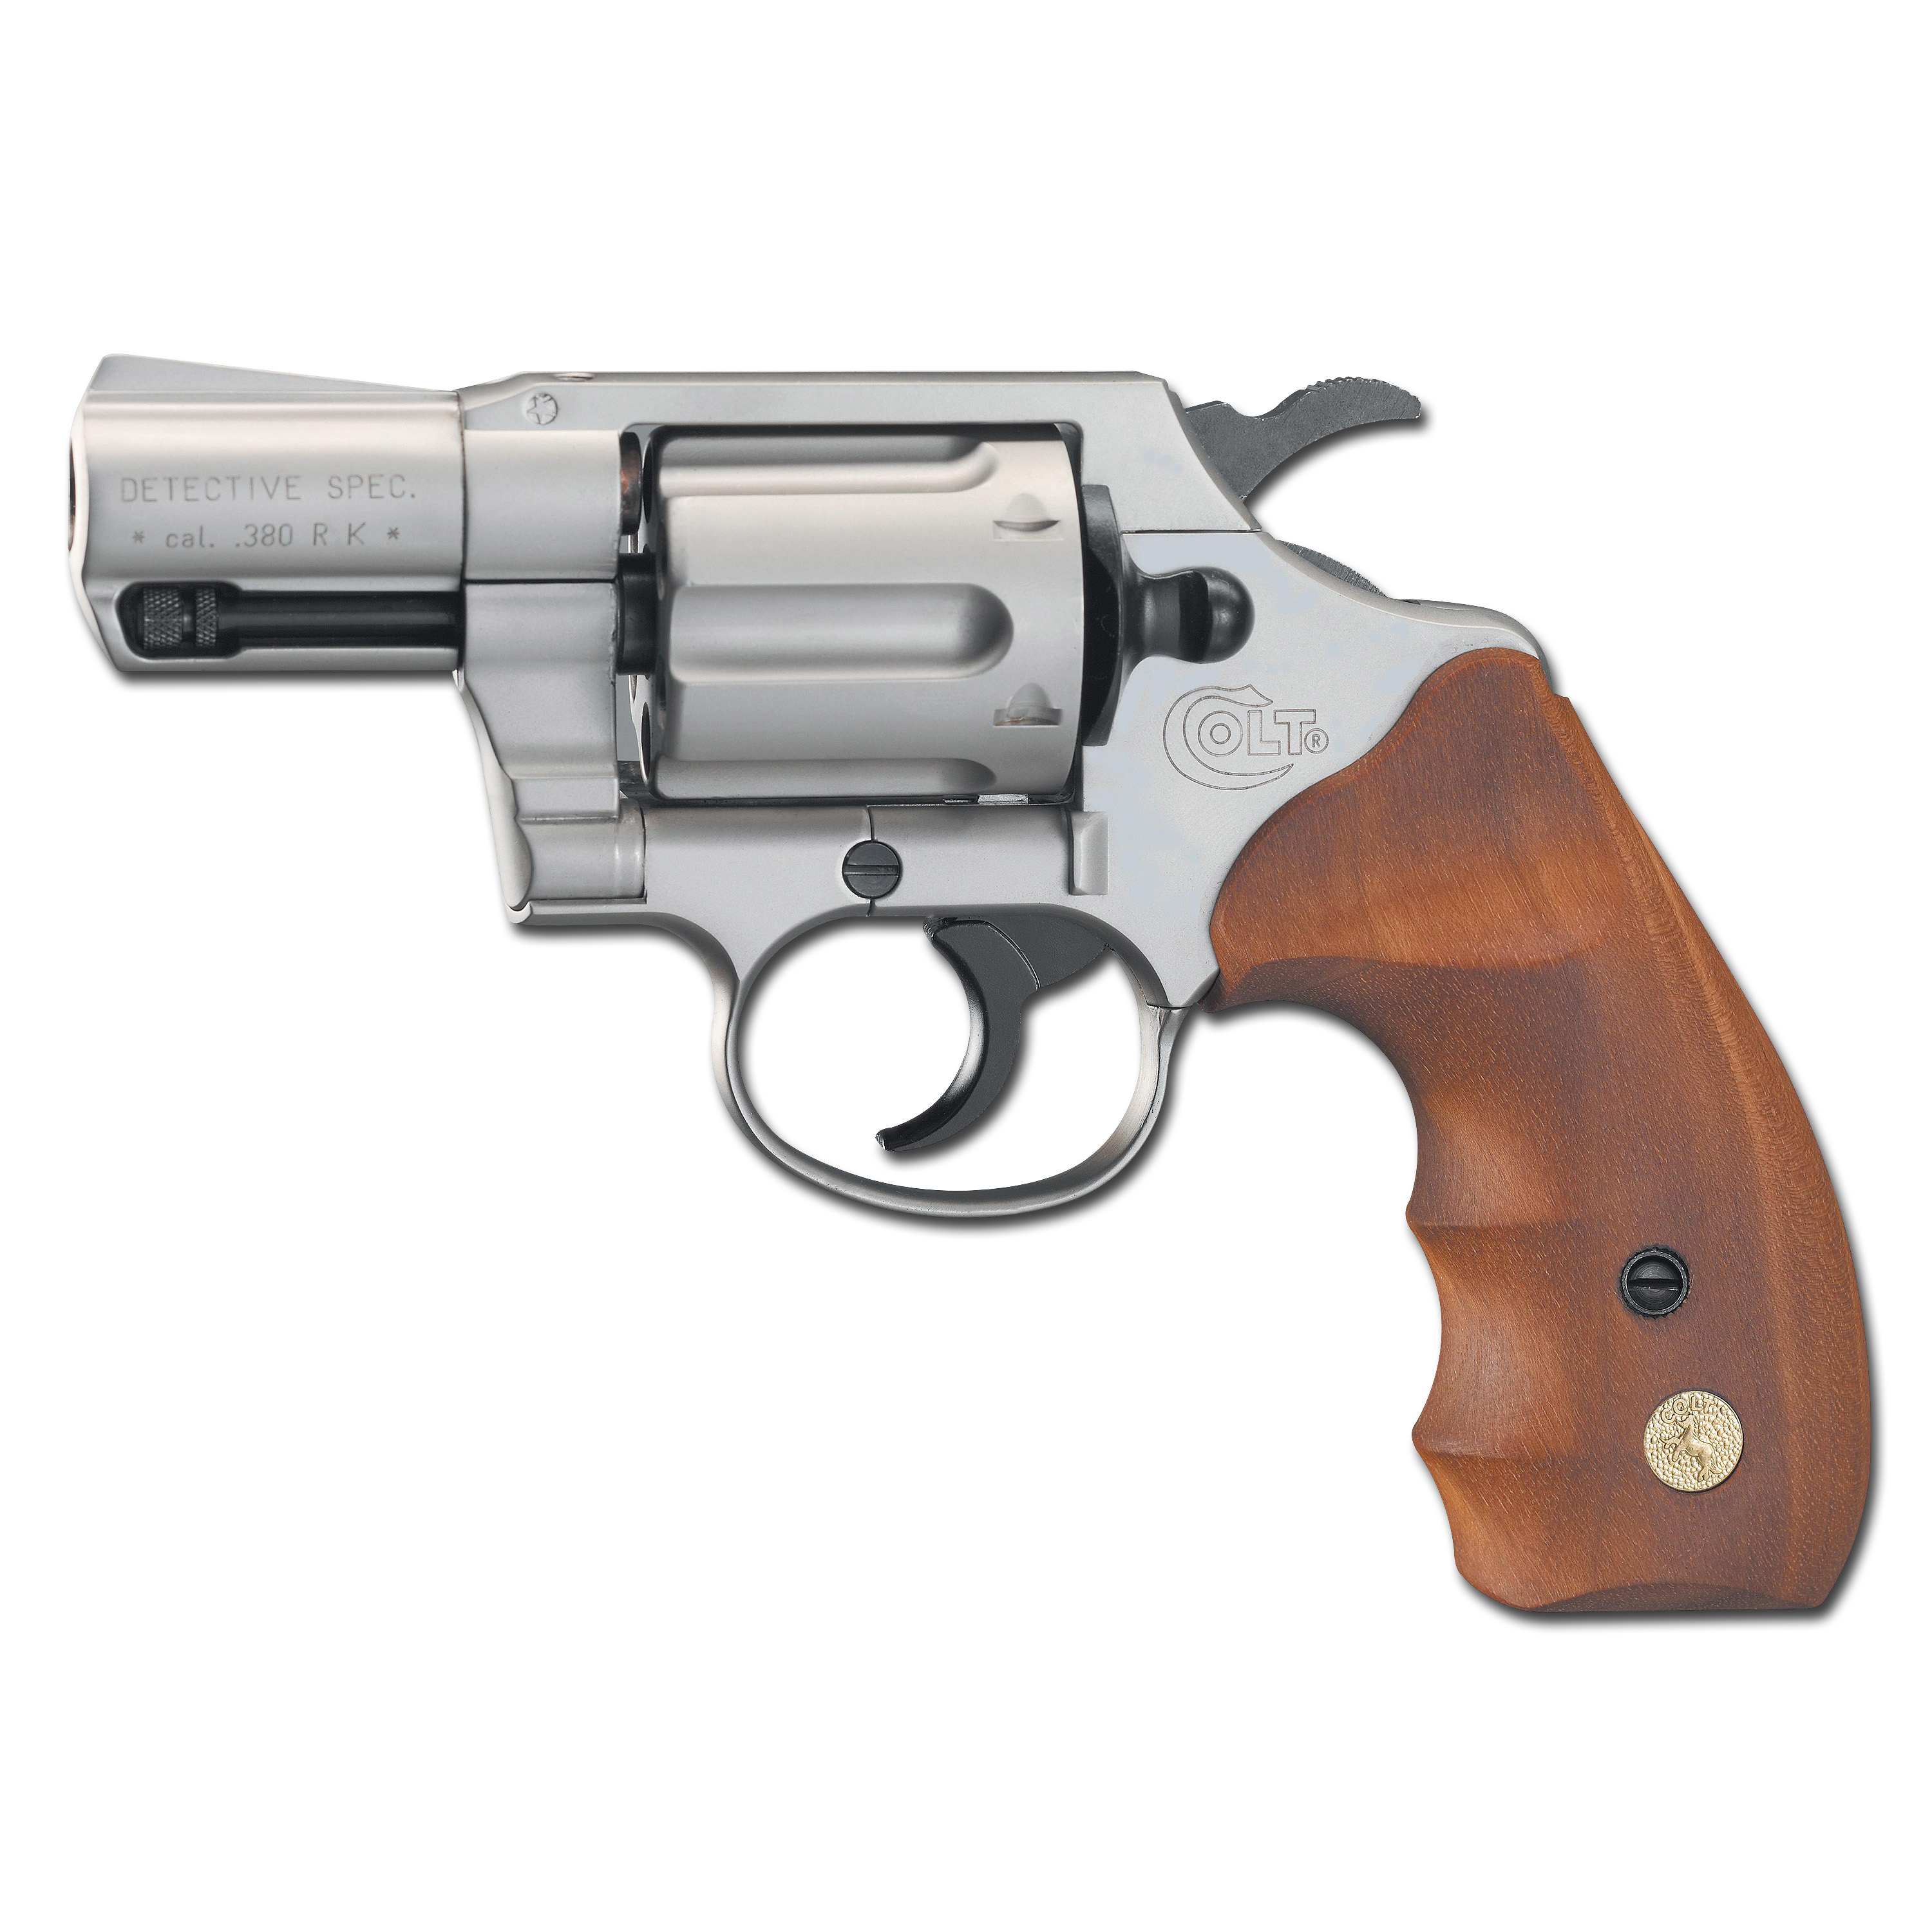 Colt Detective Special nickel-plated